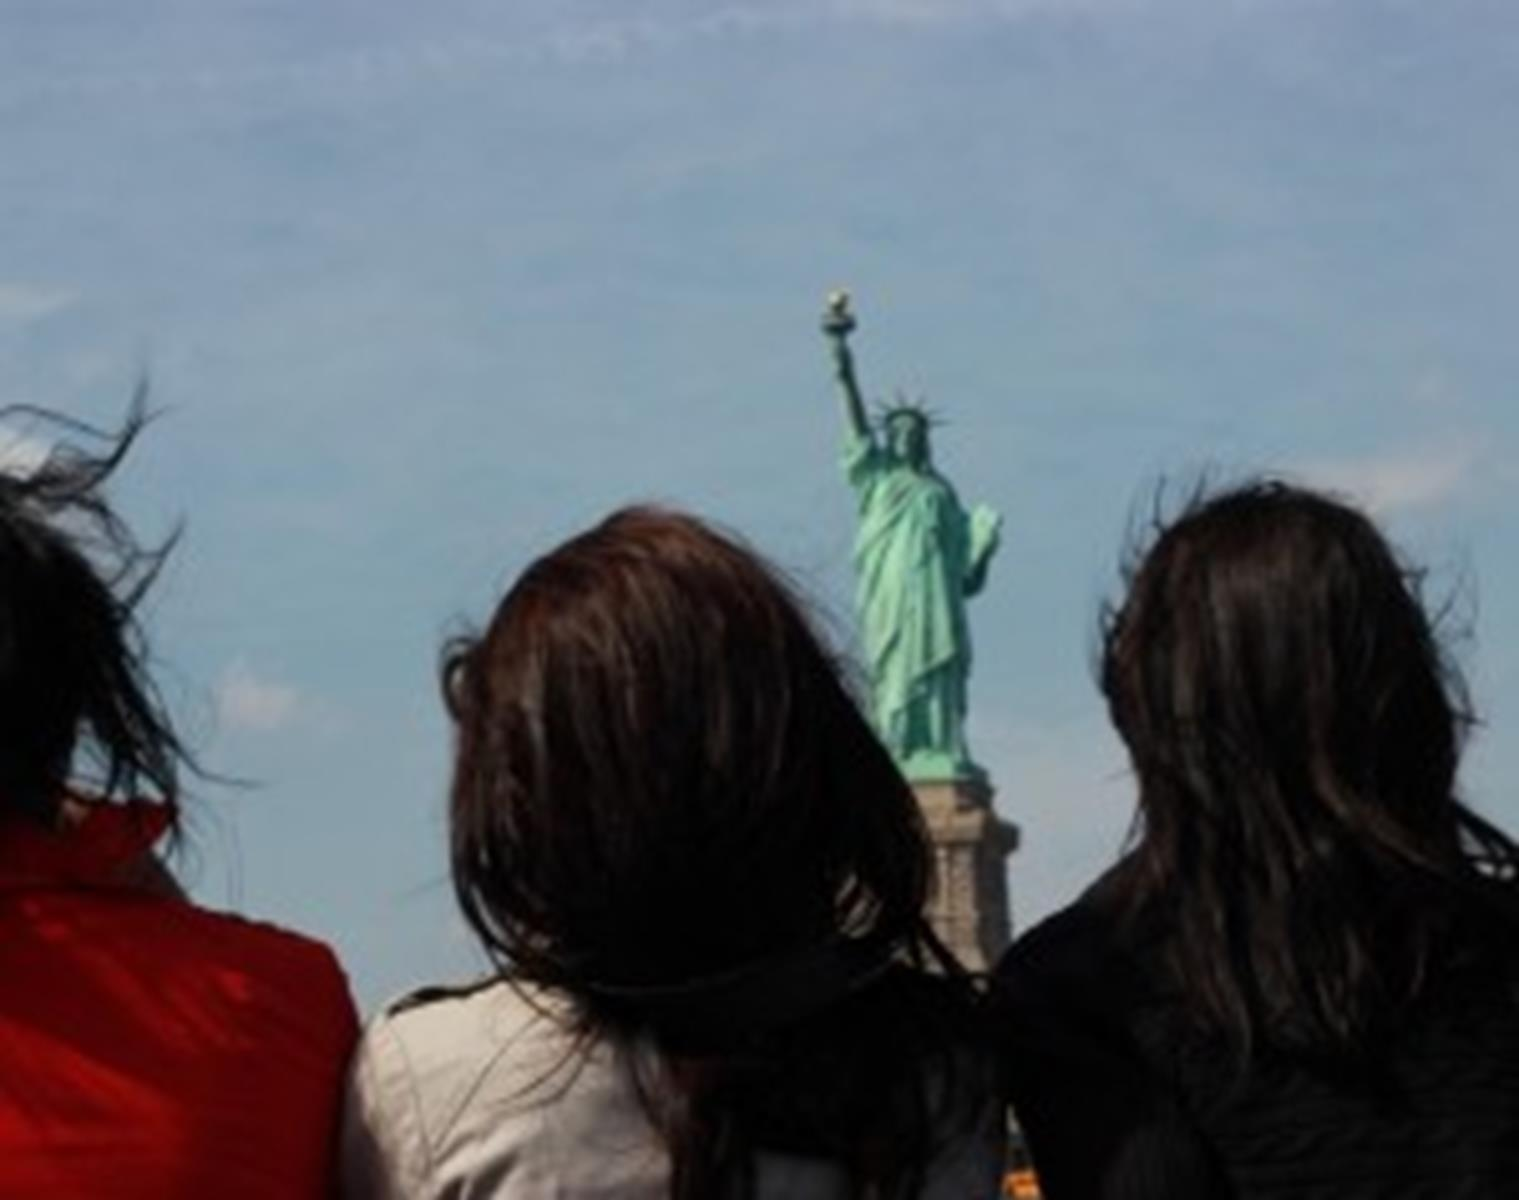 Each cruise stops in front of the Statue of Liberty for photos.